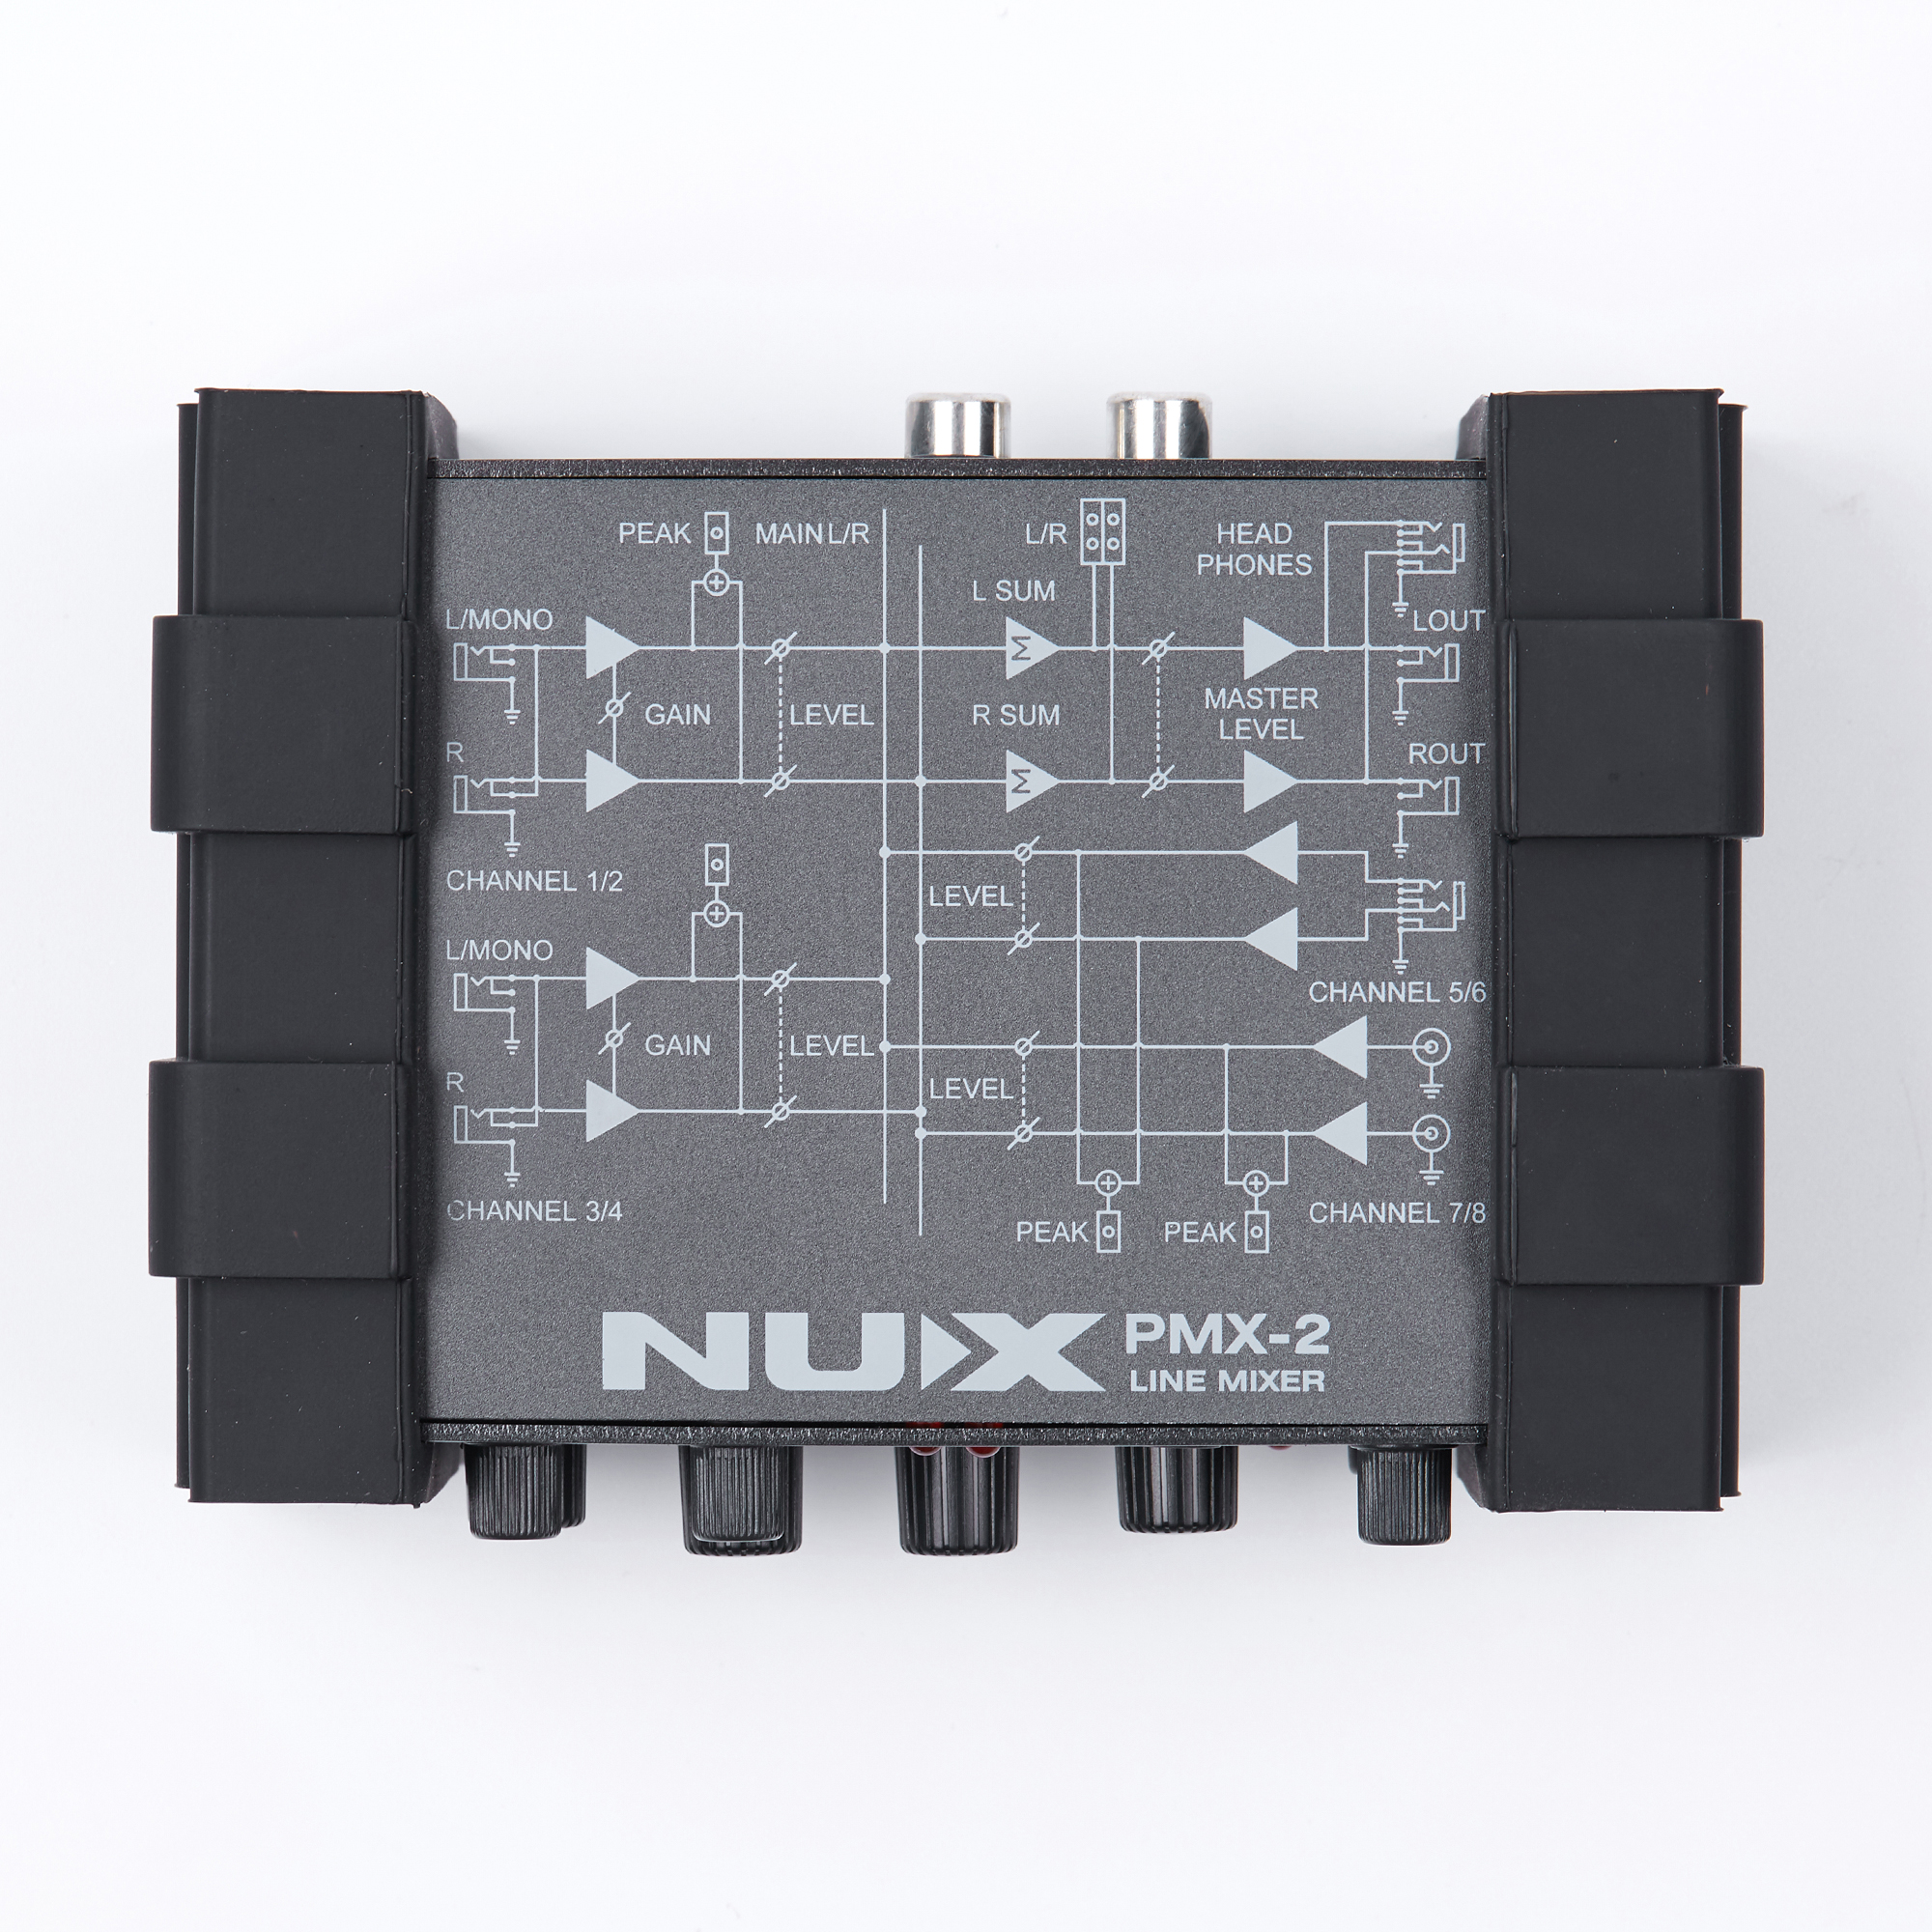 Gain Control 8 Inputs and 2 Outputs NUX PMX-2 Multi-Channel Mini Mixer 30 Musical Instruments Accessories for Guitar Bass Player free shipping 5pcs lot isl62881hrtz 62881hrtz isl62881 qfn 100